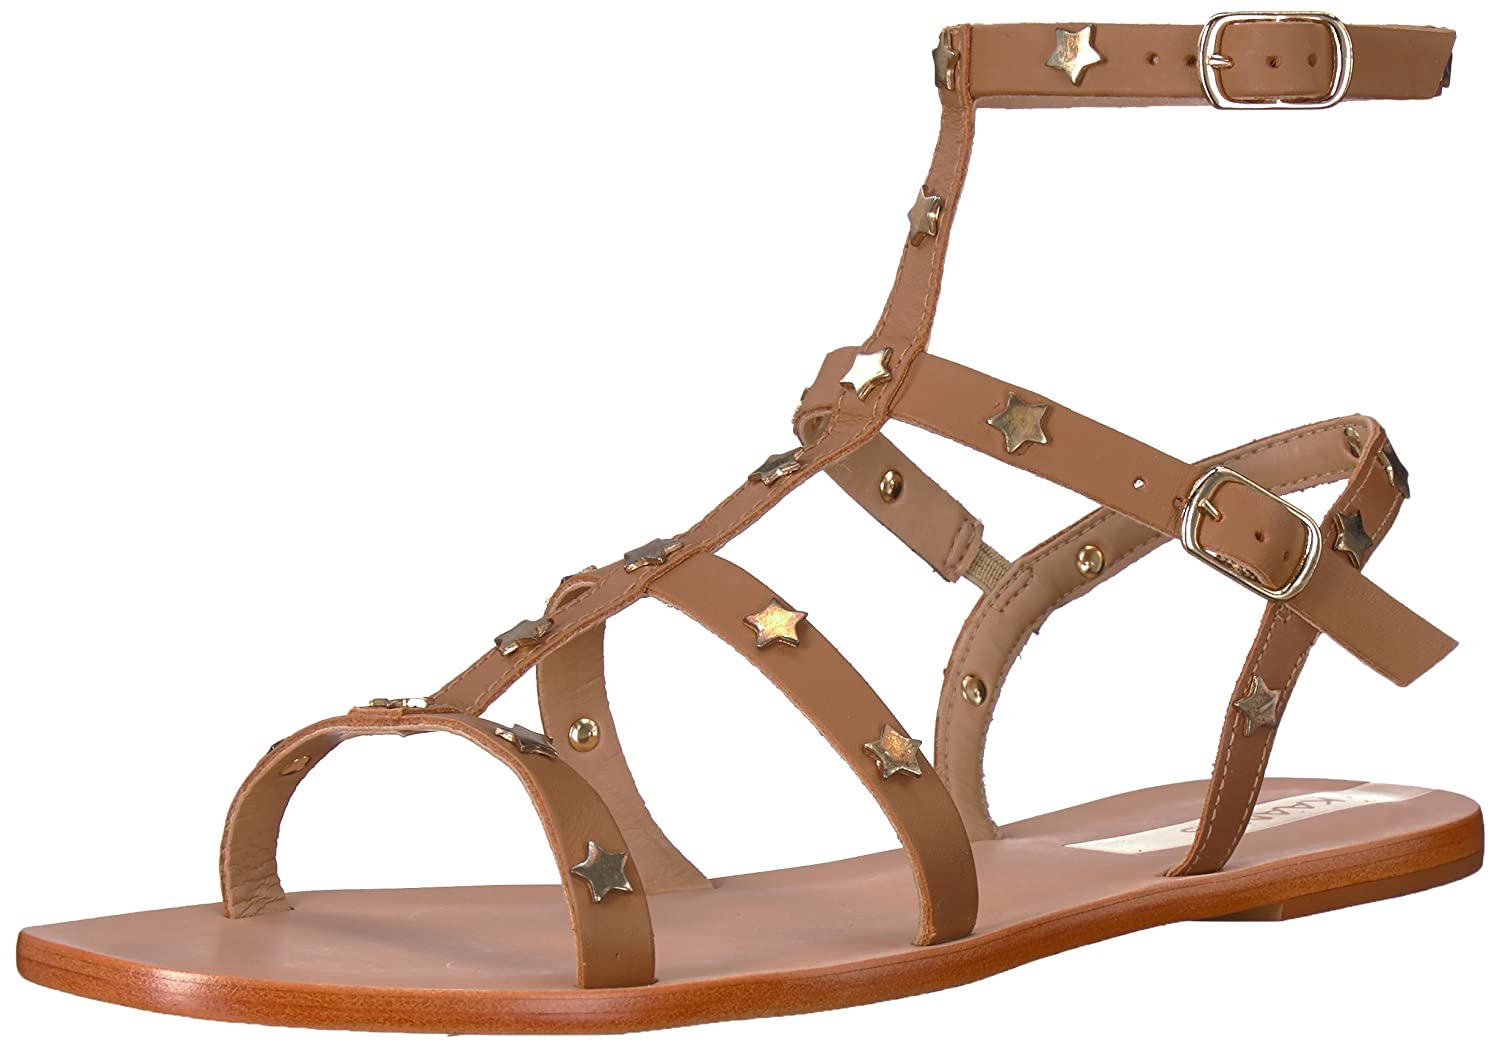 KAANAS Women's Lapa Embellished Gladiator Flat Sandal B077JG2LST 9 B(M) US|Honey